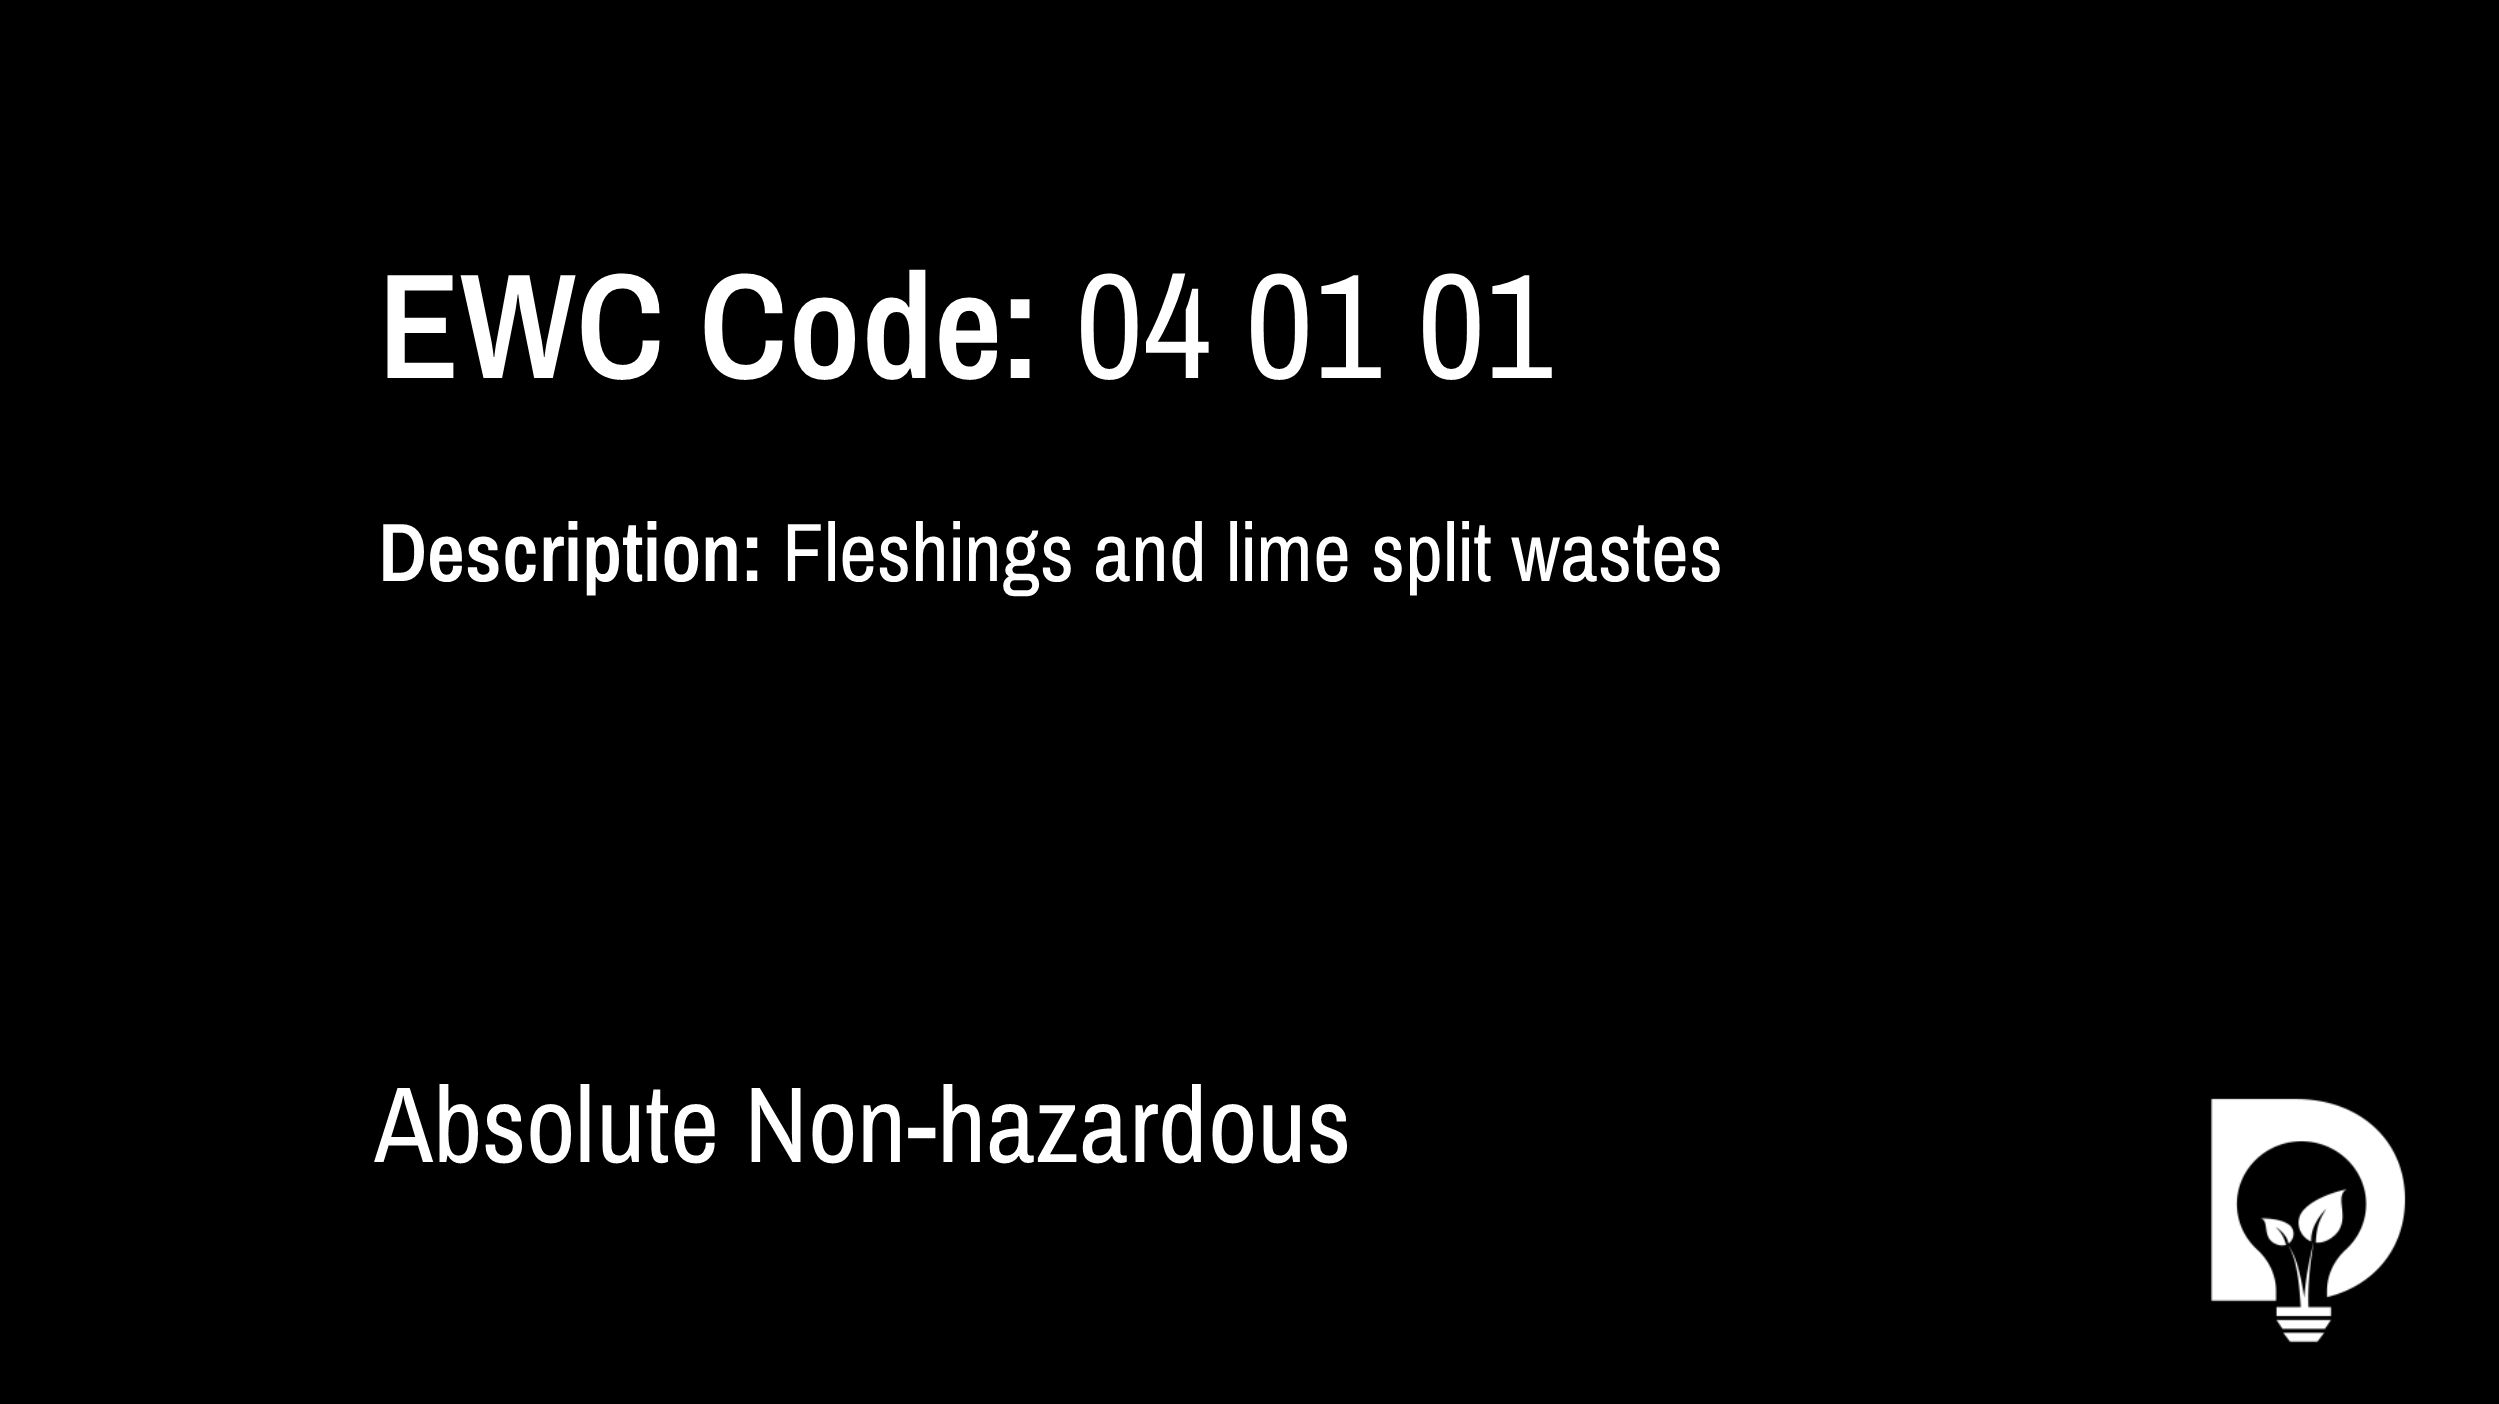 EWC Code: 04 01 01 - Fleshings and lime split wastes. Type: Absolute Non-hazardous. Image by Dsposal